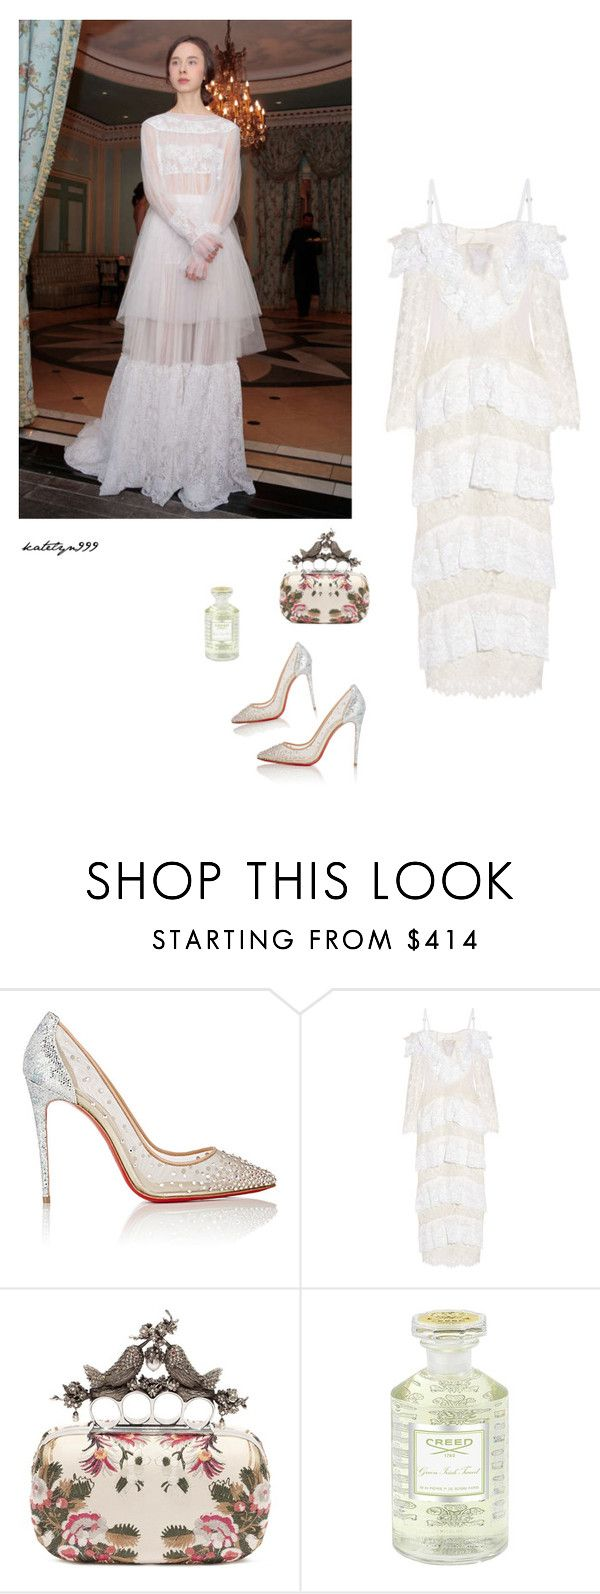 """Listen to your heart..."" by katelyn999 ❤ liked on Polyvore featuring Christian Louboutin, Delphine Manivet, Alessandra Rich, Alexander McQueen, Creed, bridal, whitedress and polyvoreeditorial"